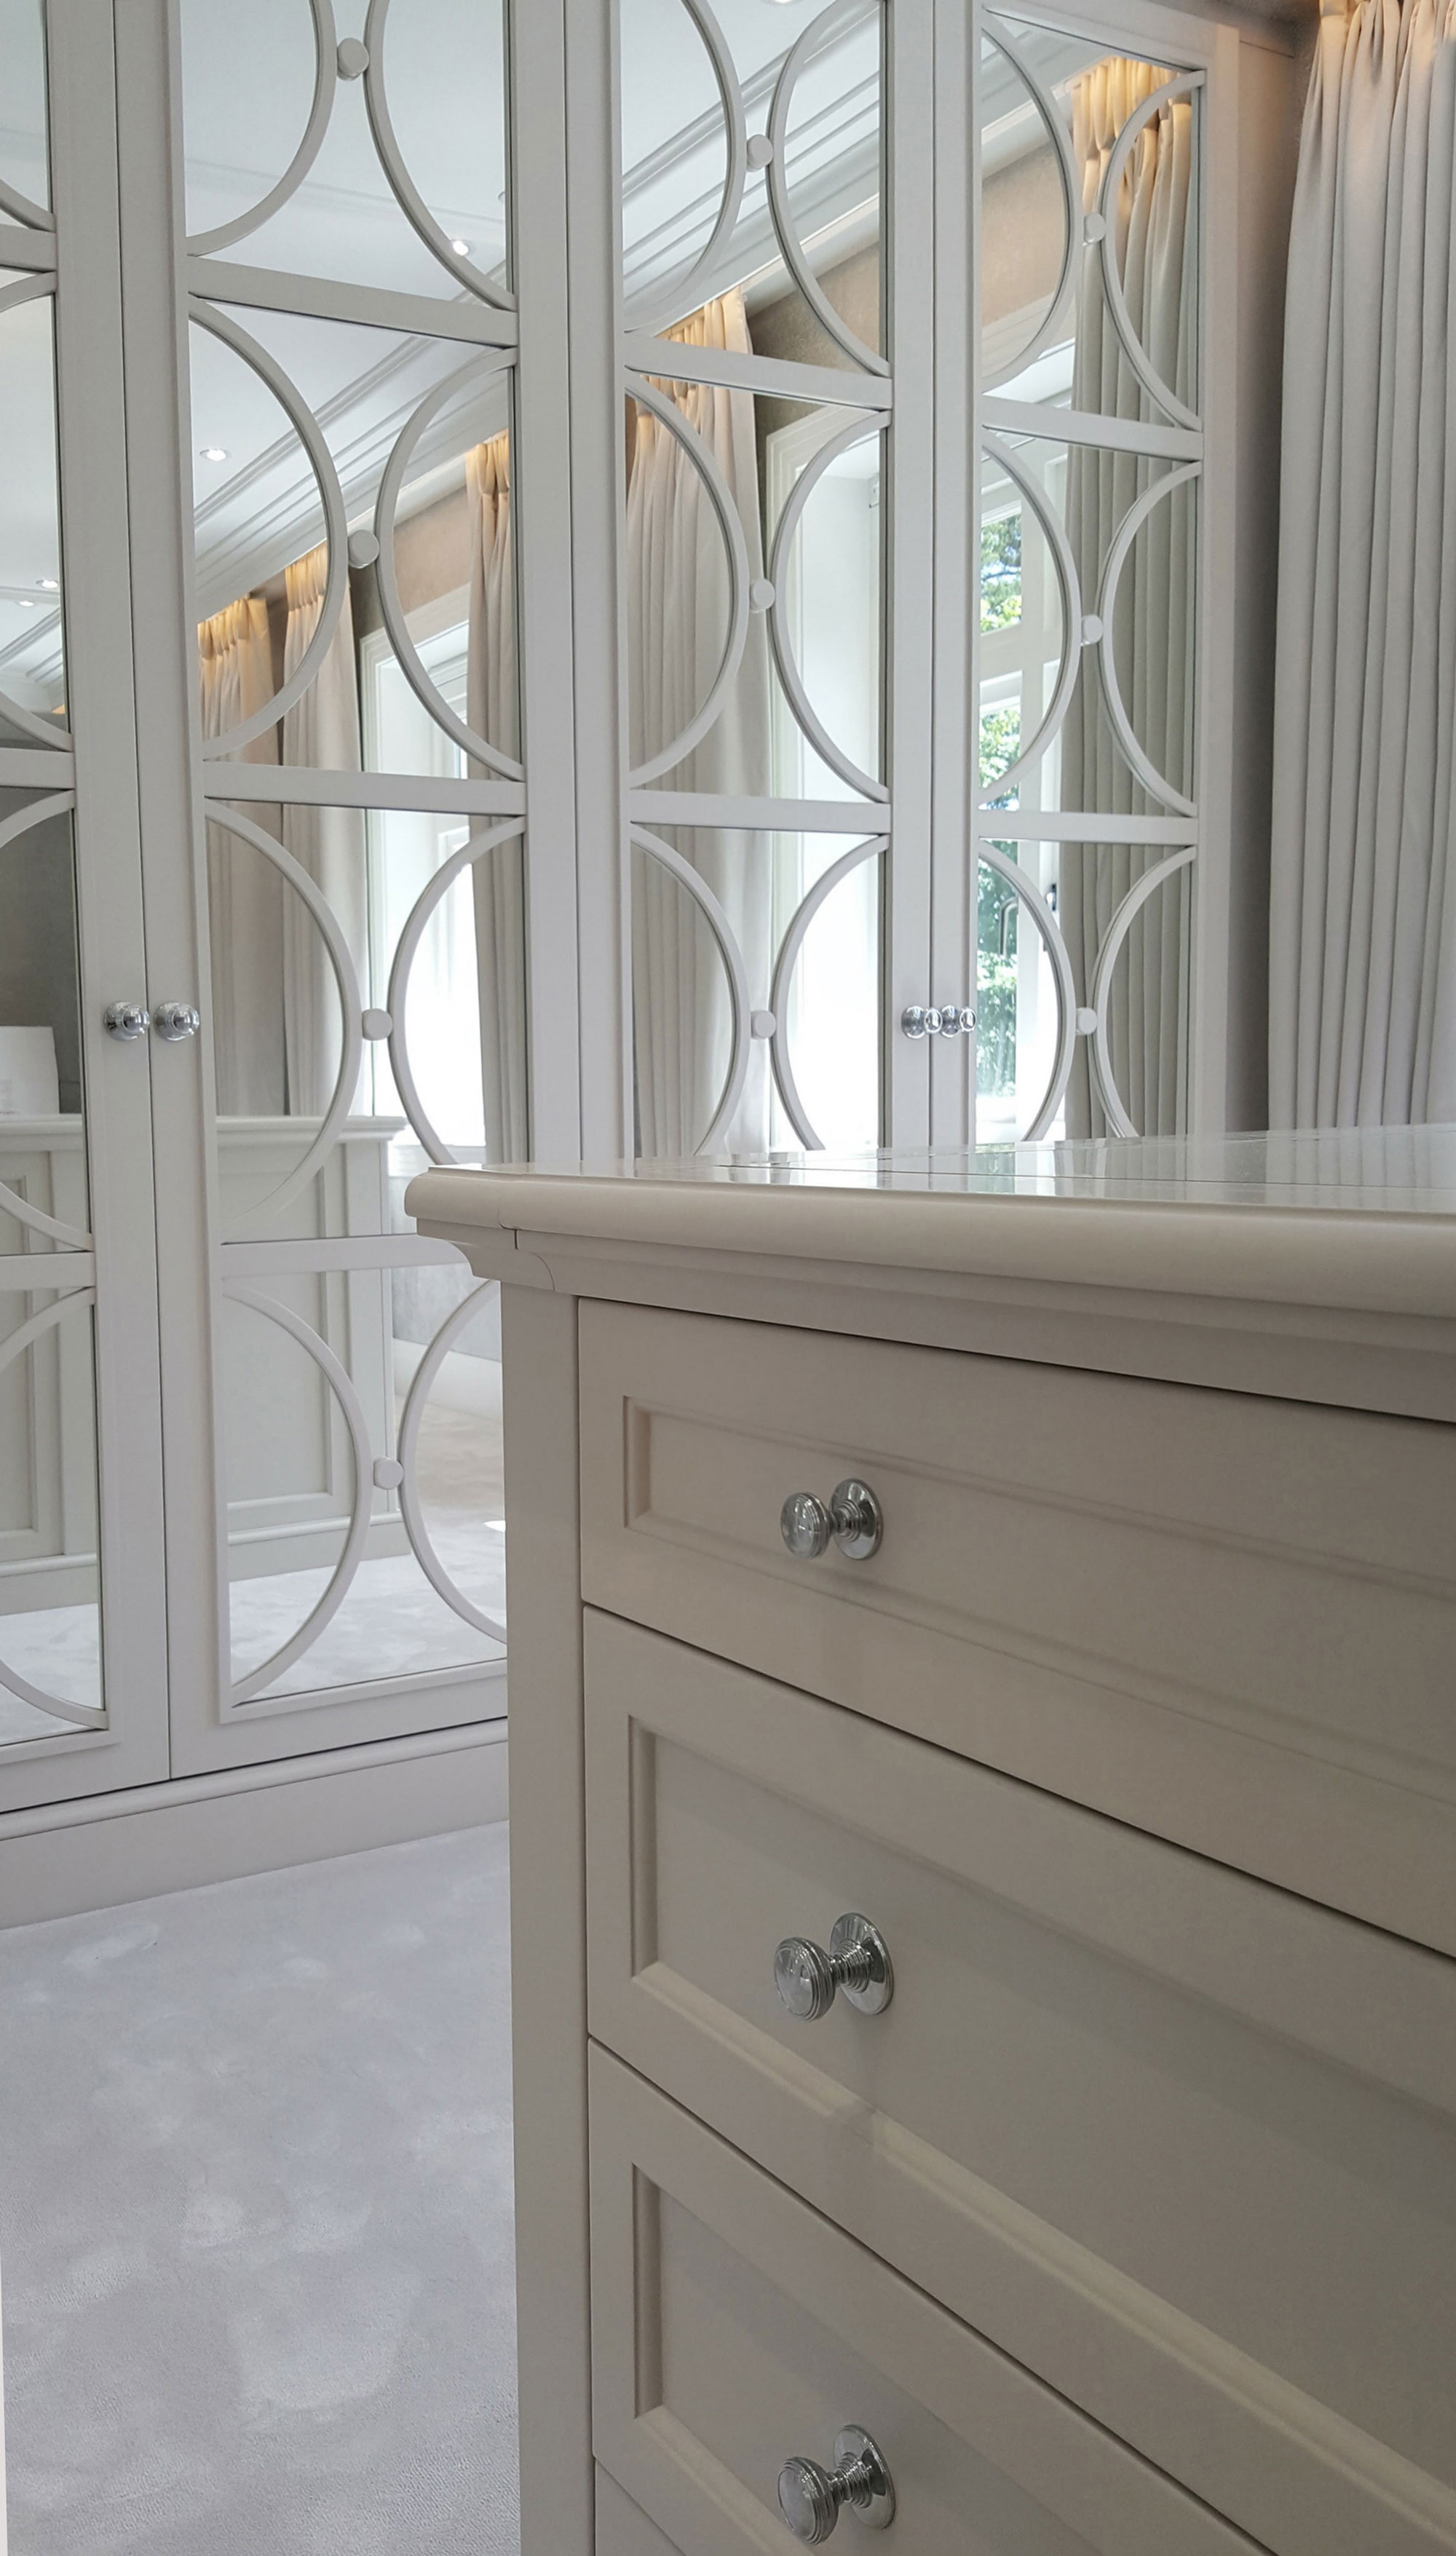 Island Unit Chest of Drawers